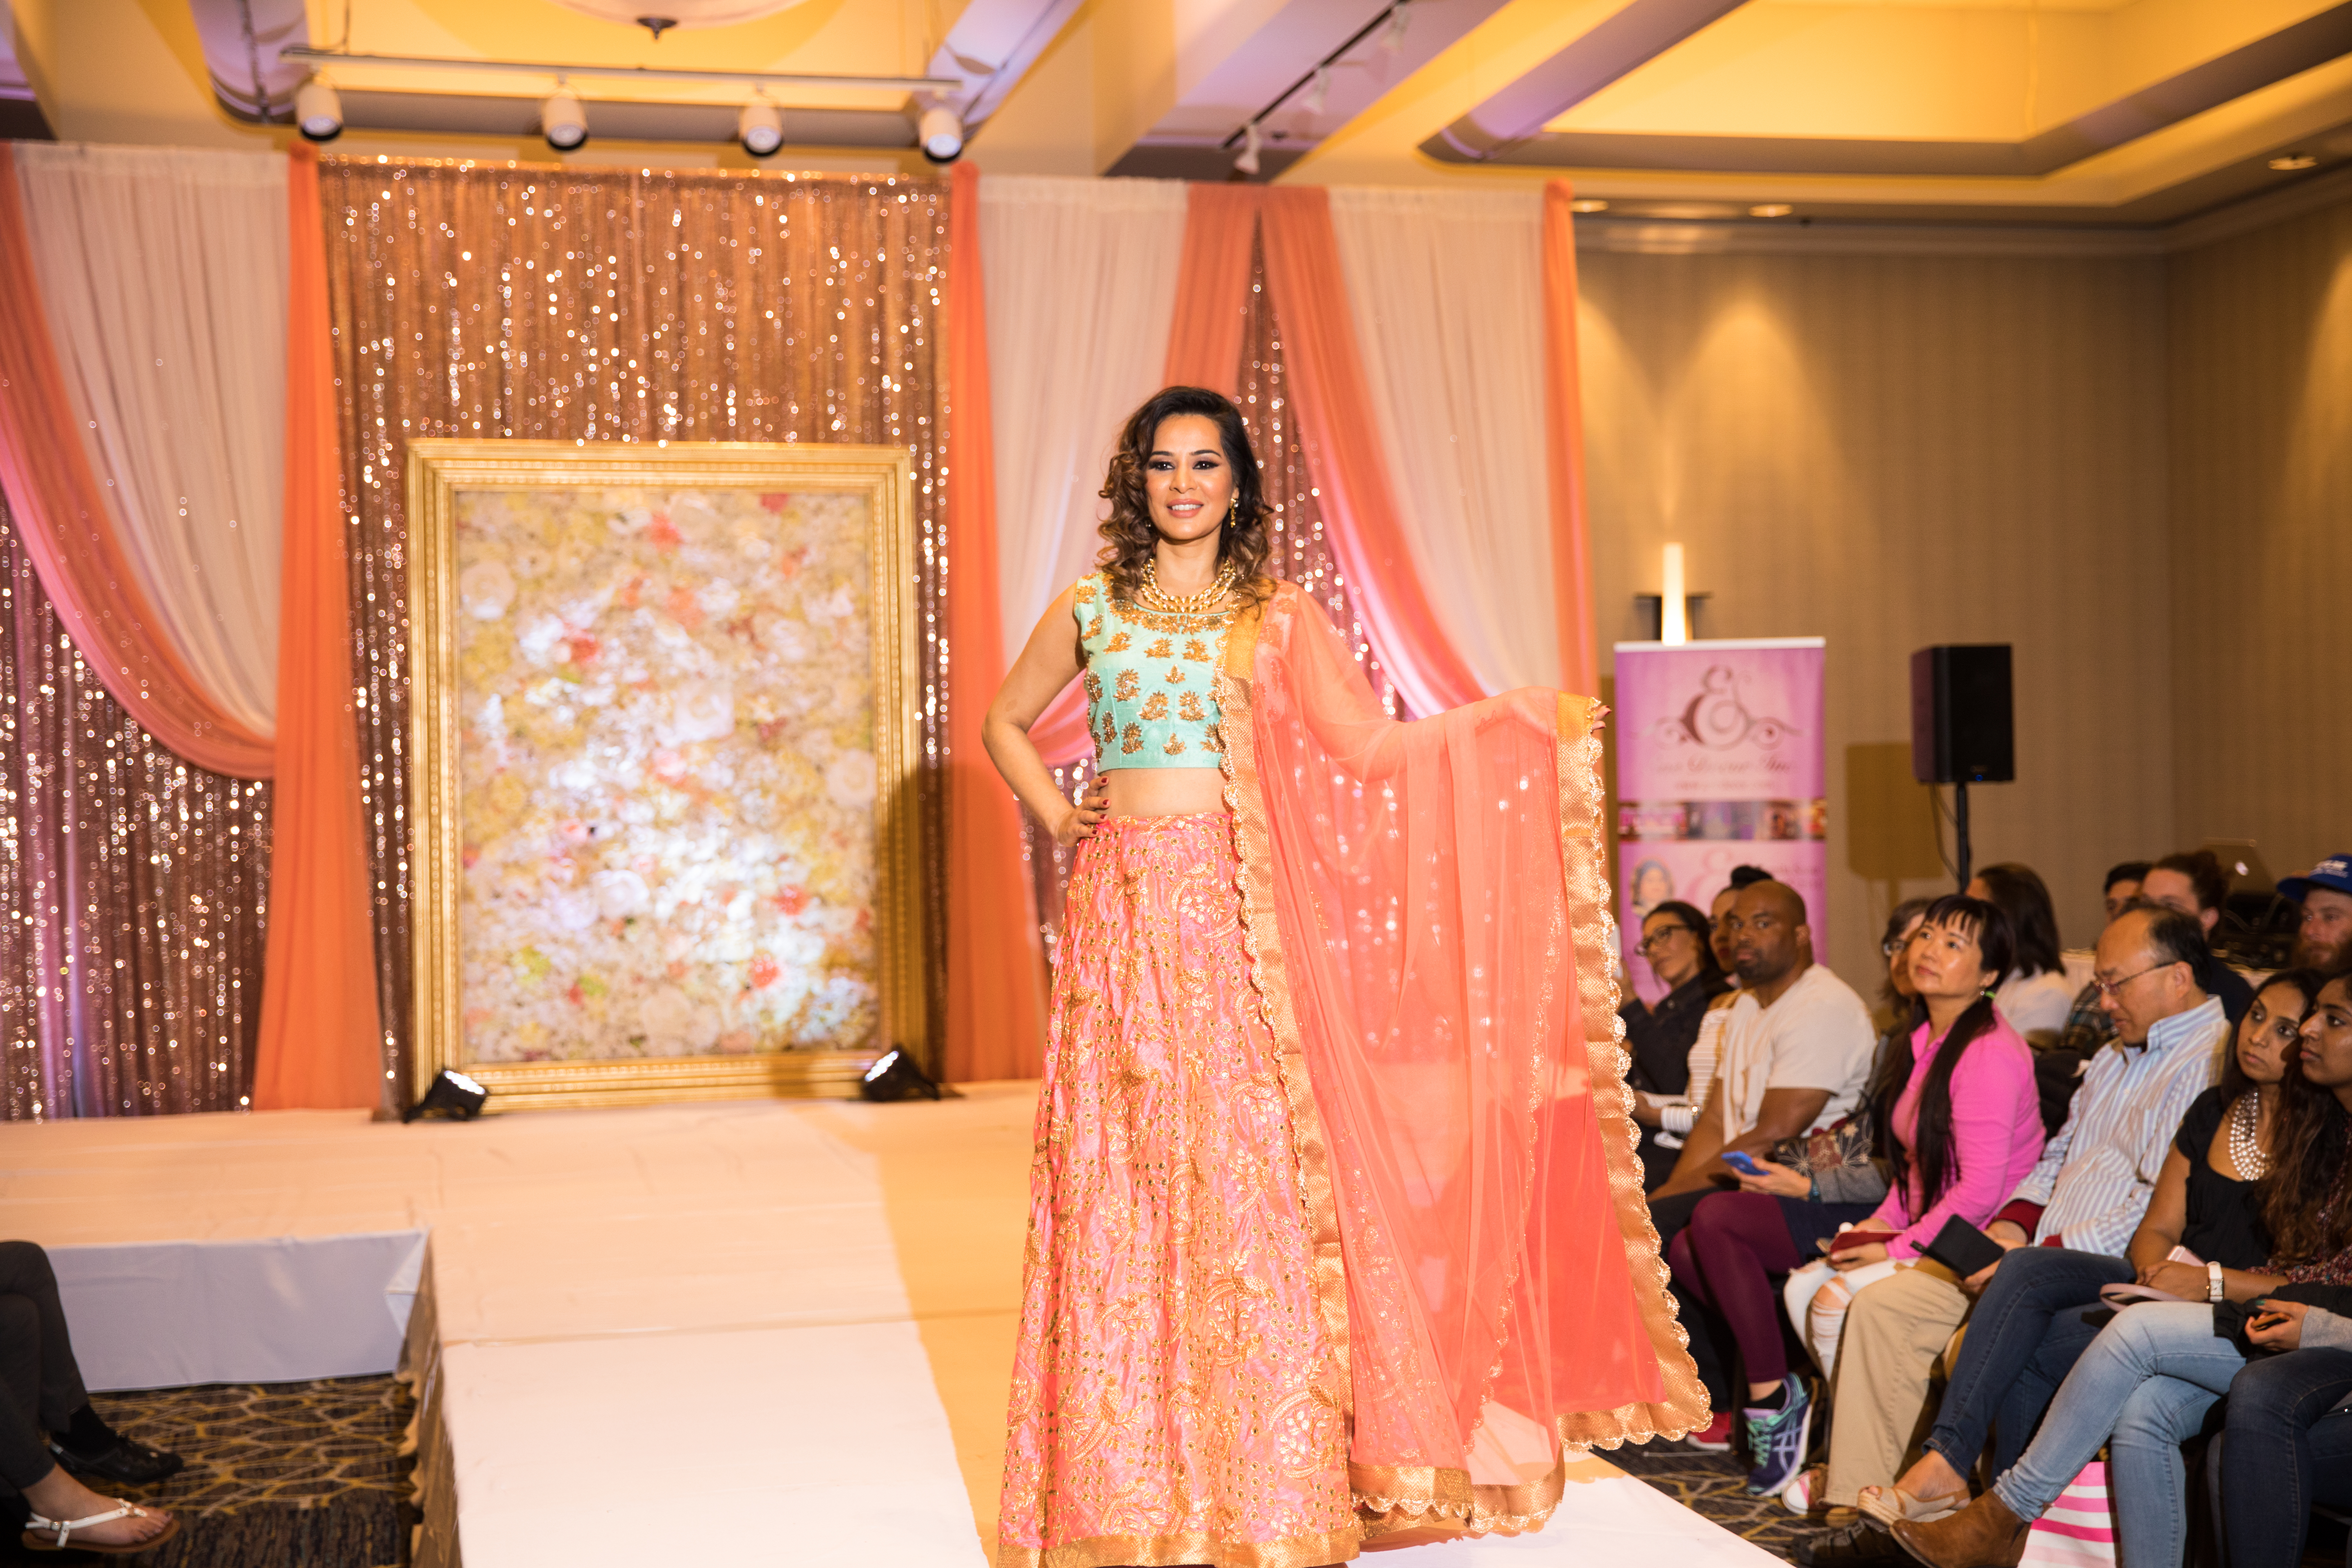 sf-bayarea-indian-wedding-bridal-show-photographer-edcarlogarcia-B35A1883